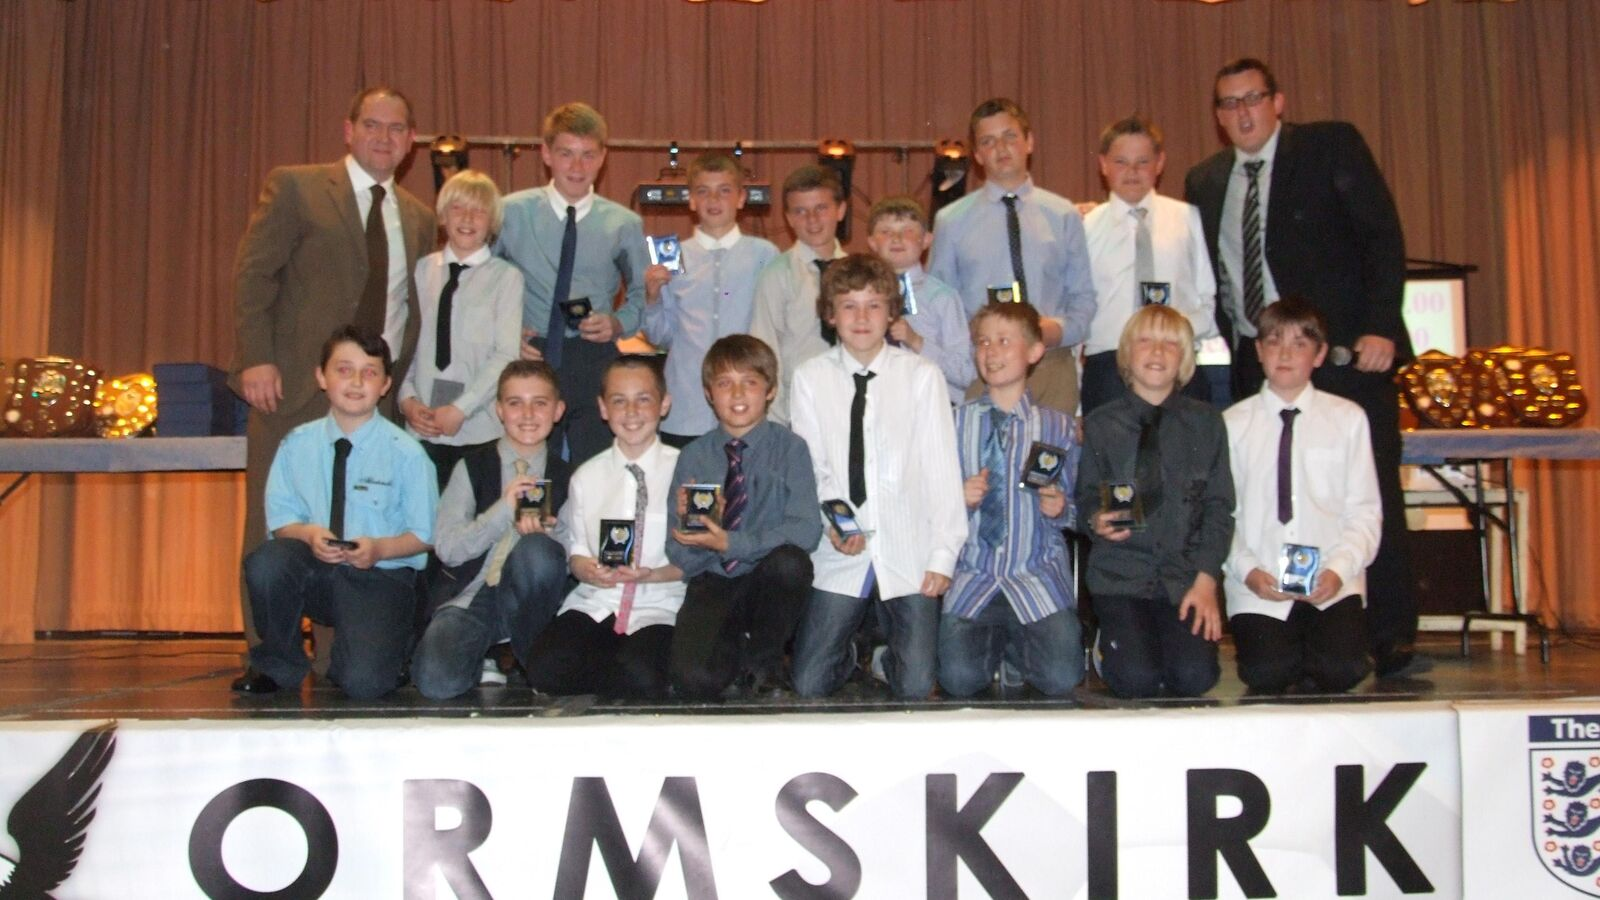 Ormskirk FC Presentation Evening 2011/2012